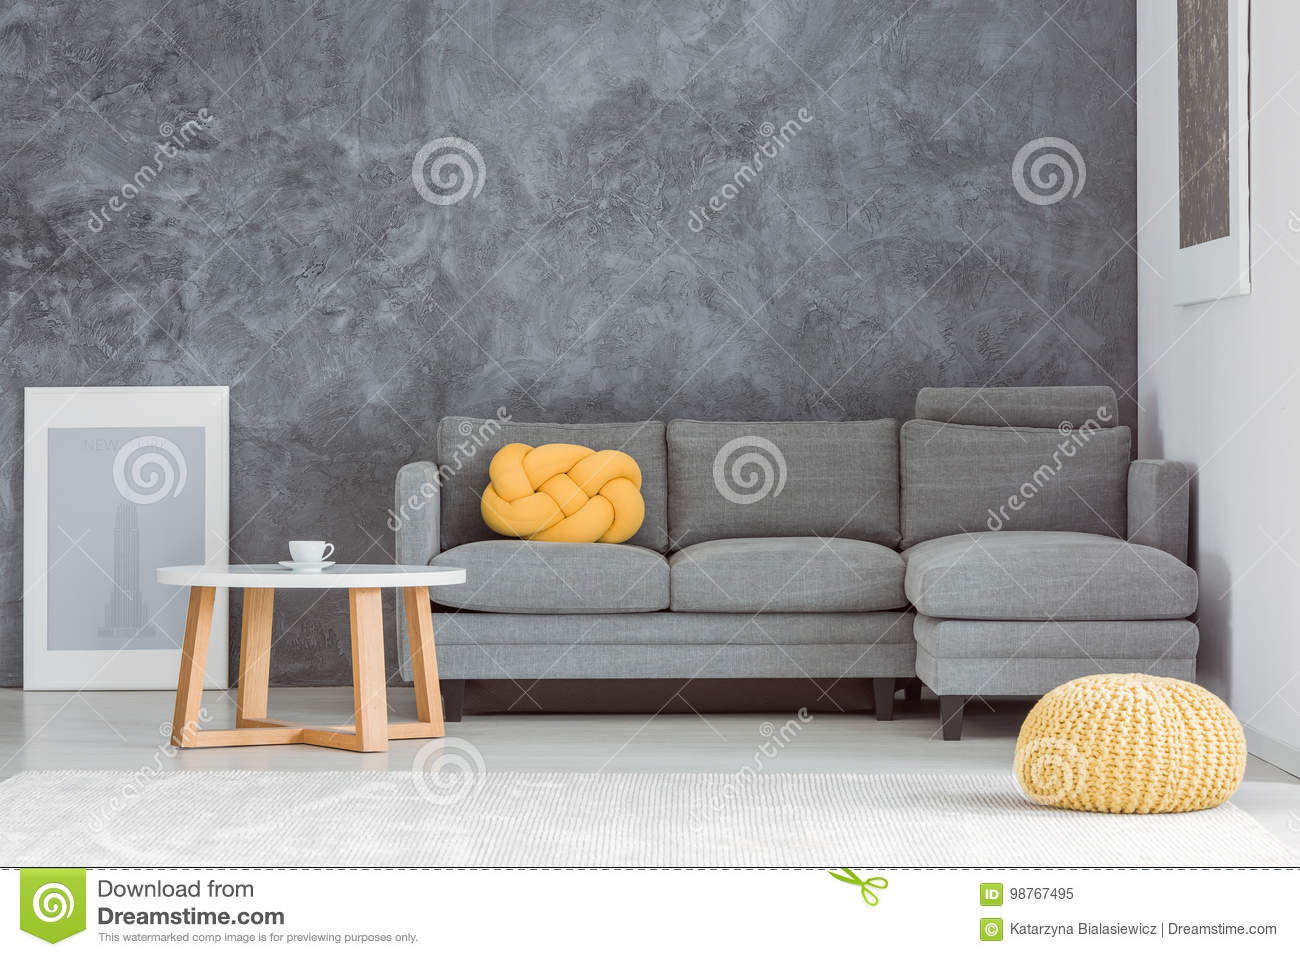 pouf in living room couch images yellow stock image of flat 98767495 front grey sofa against concrete wall with designed coffee table